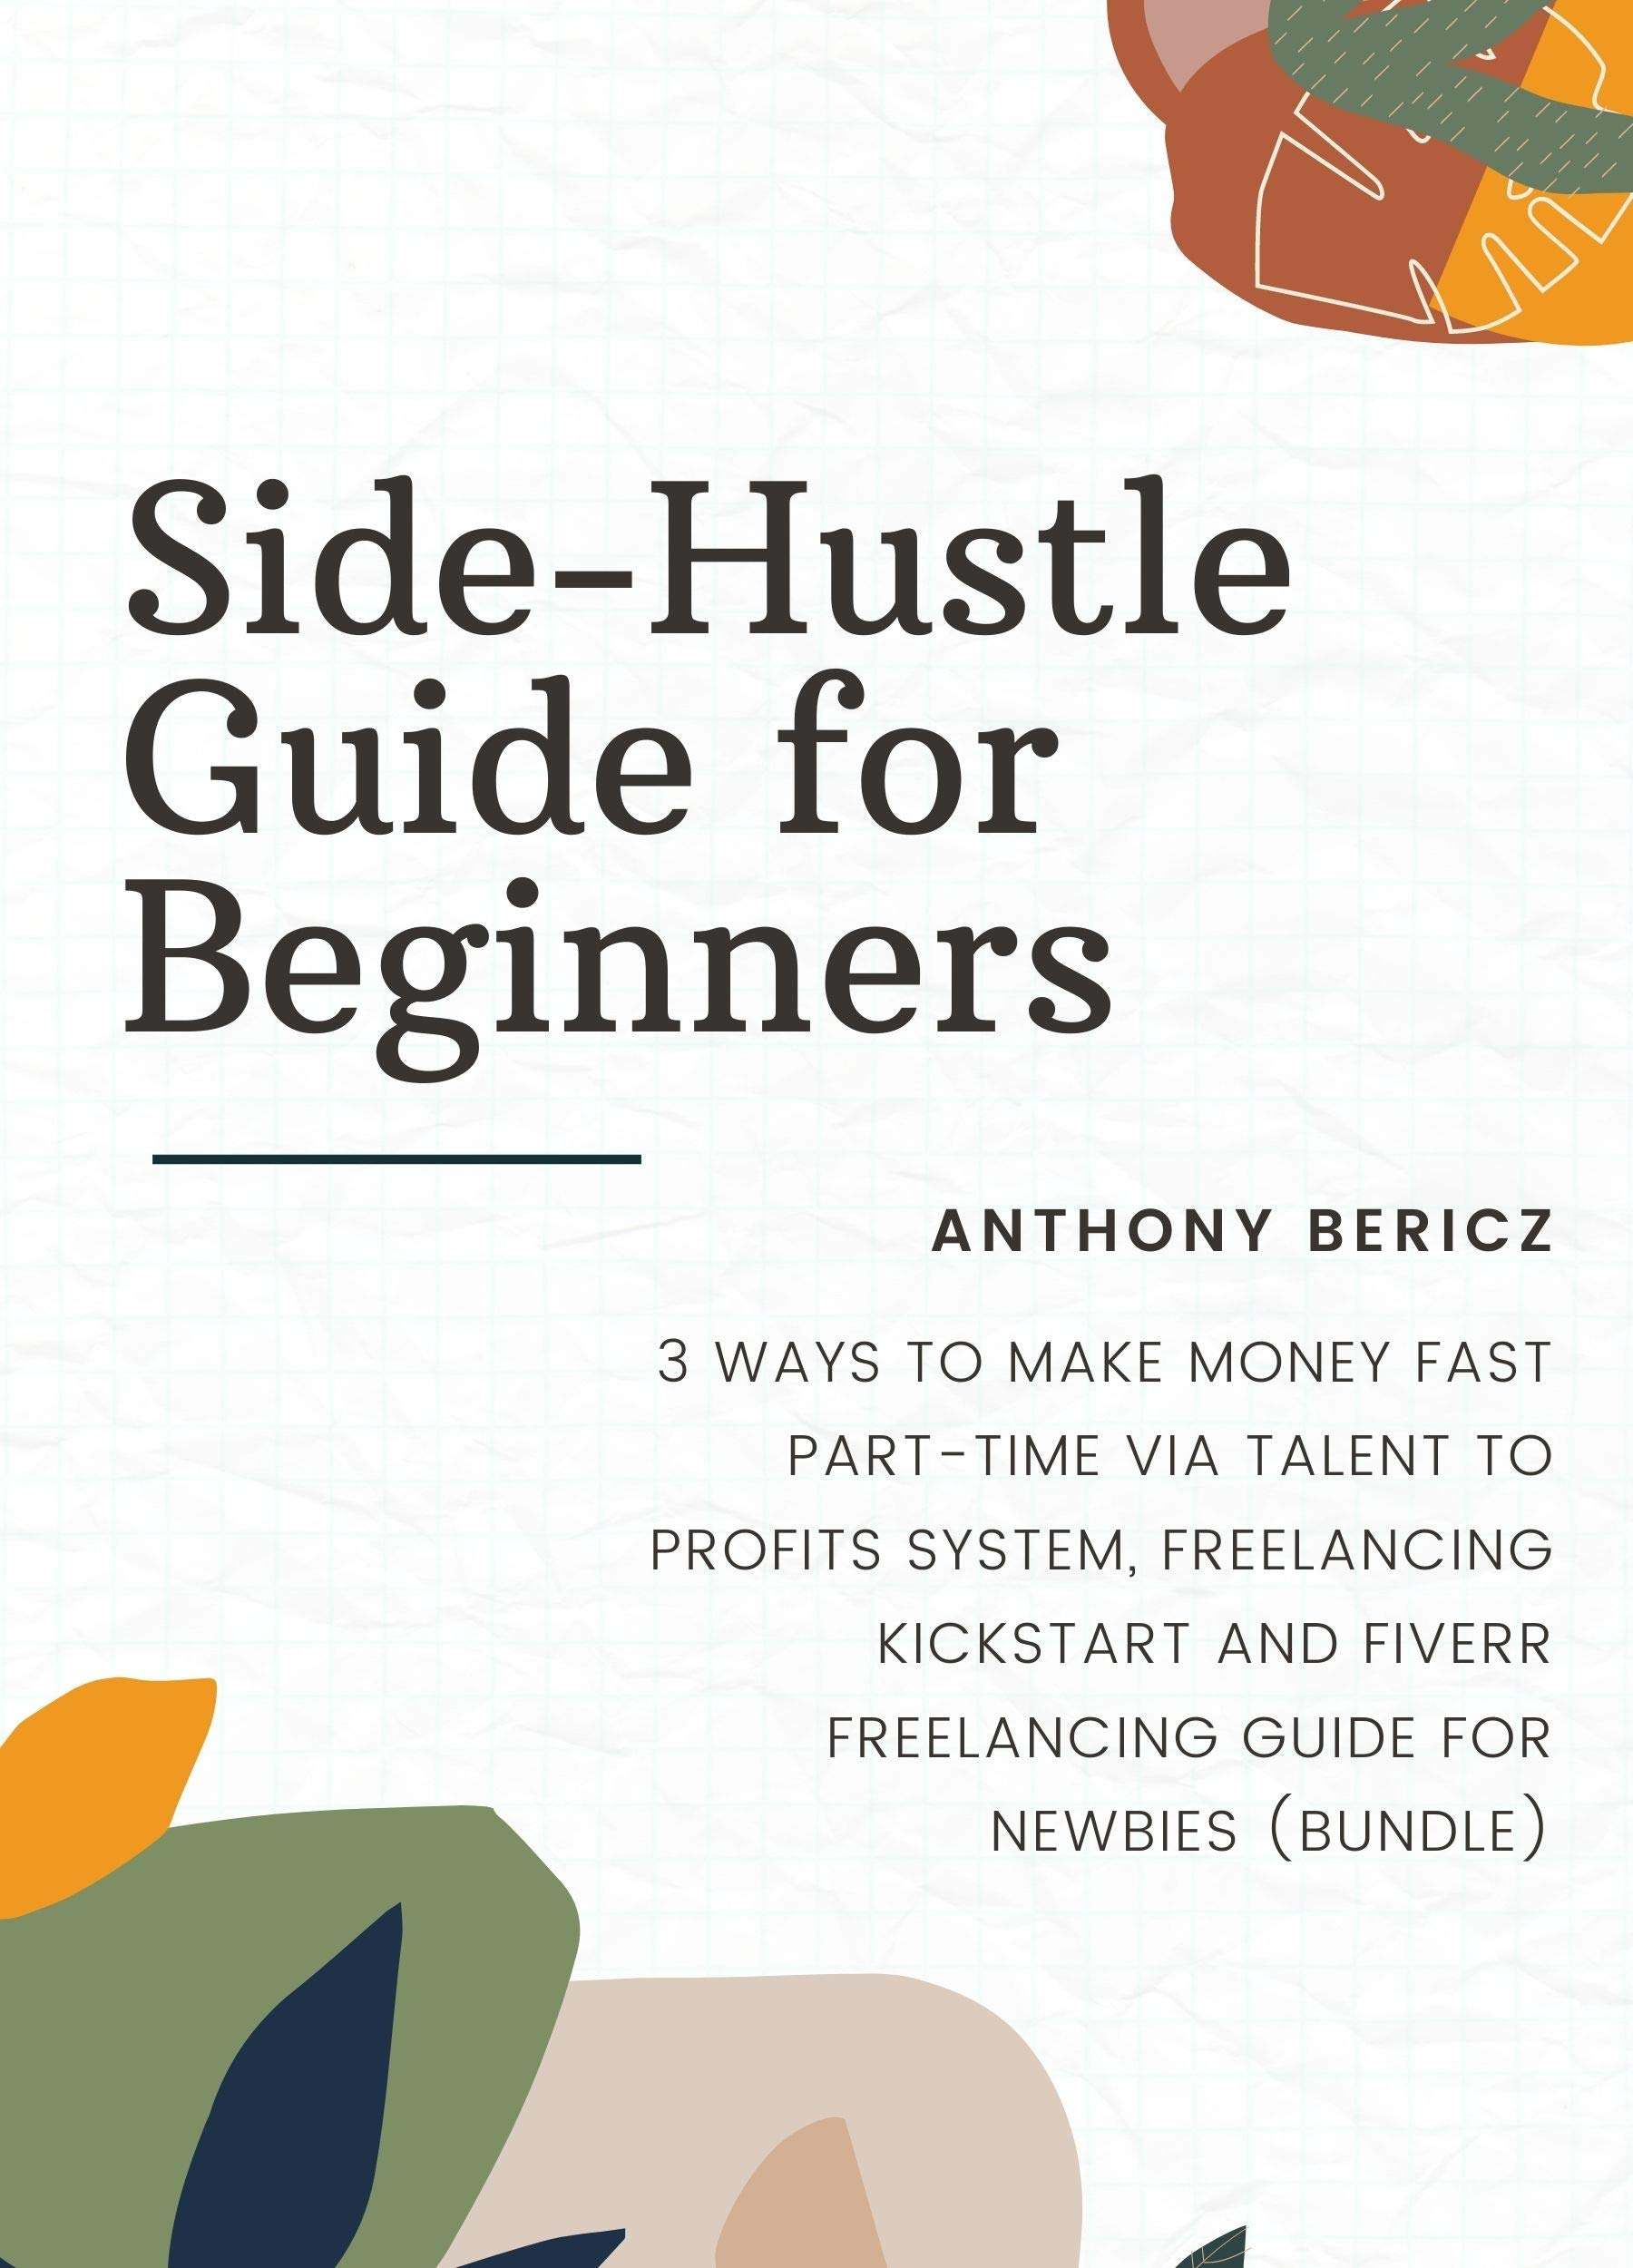 Side-Hustle Guide for Beginners: 3 Ways to Make Money Fast Part-Time via Talent to Profits System, Freelancing Kickstart and Fiverr Freelancing Guide for Newbies (Bundle)